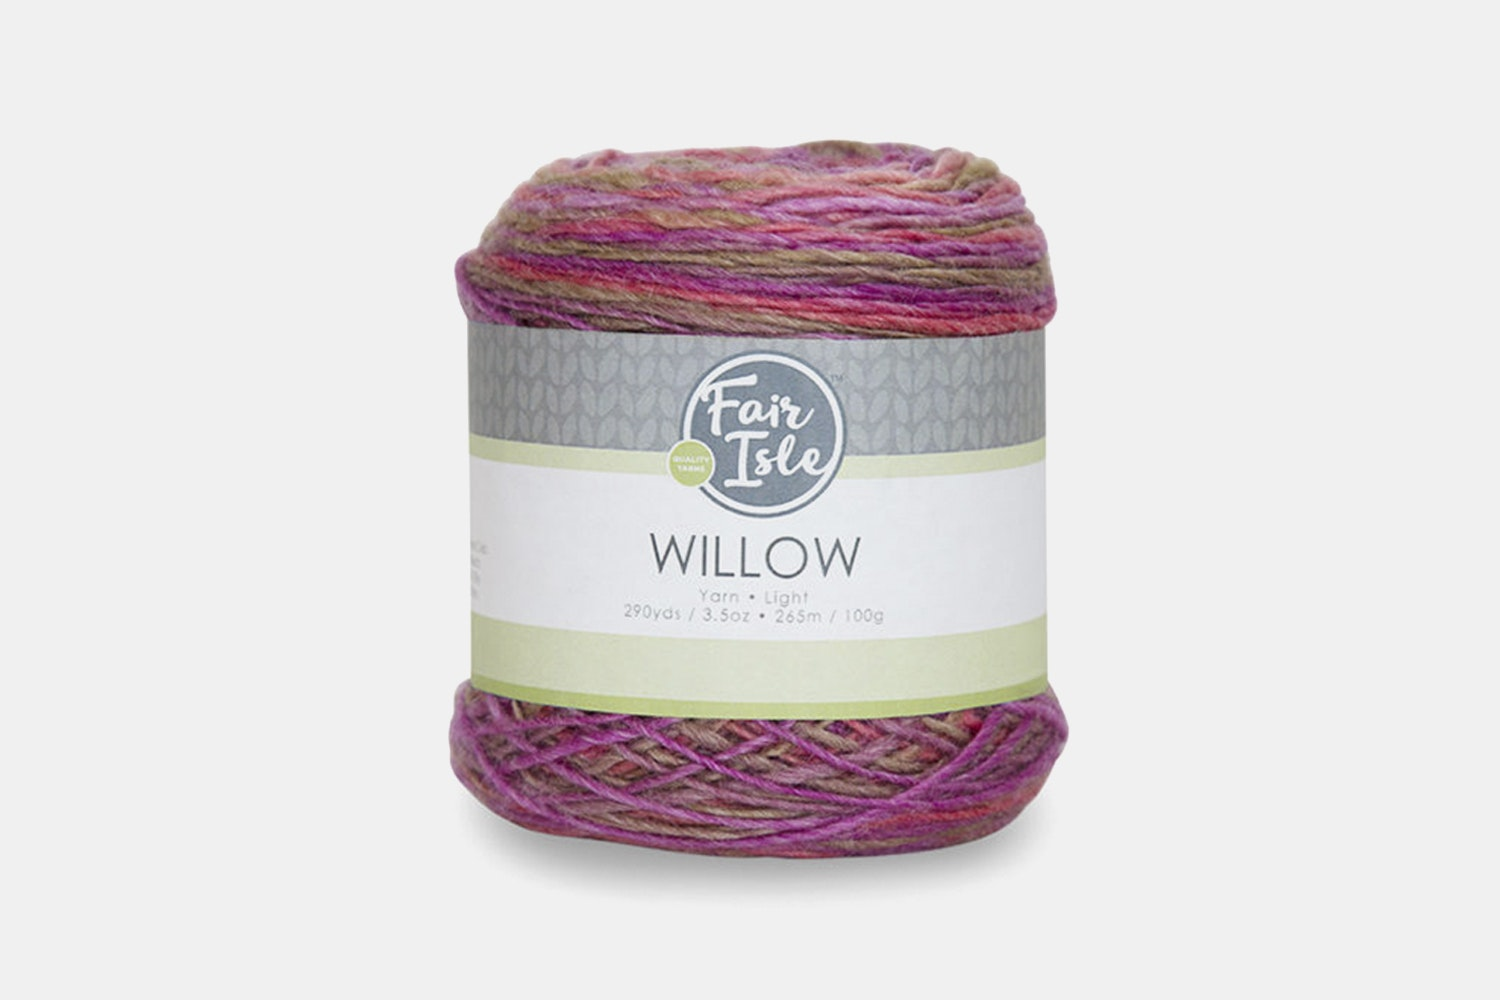 Willow Yarn by Fair Isle (2-Pack)